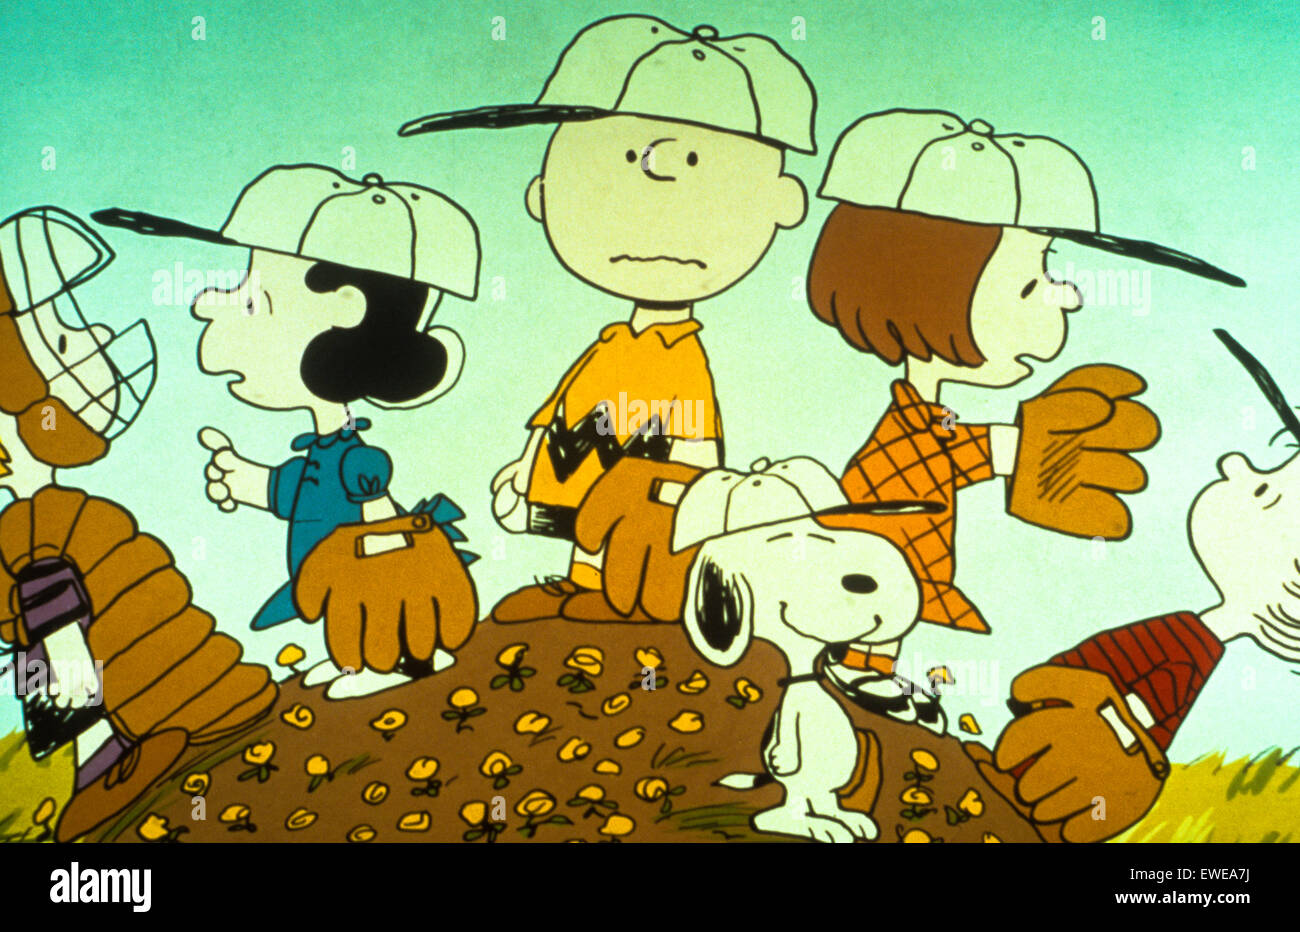 Charlie Brown Peanuts Stock Photos & Charlie Brown Peanuts Stock ...